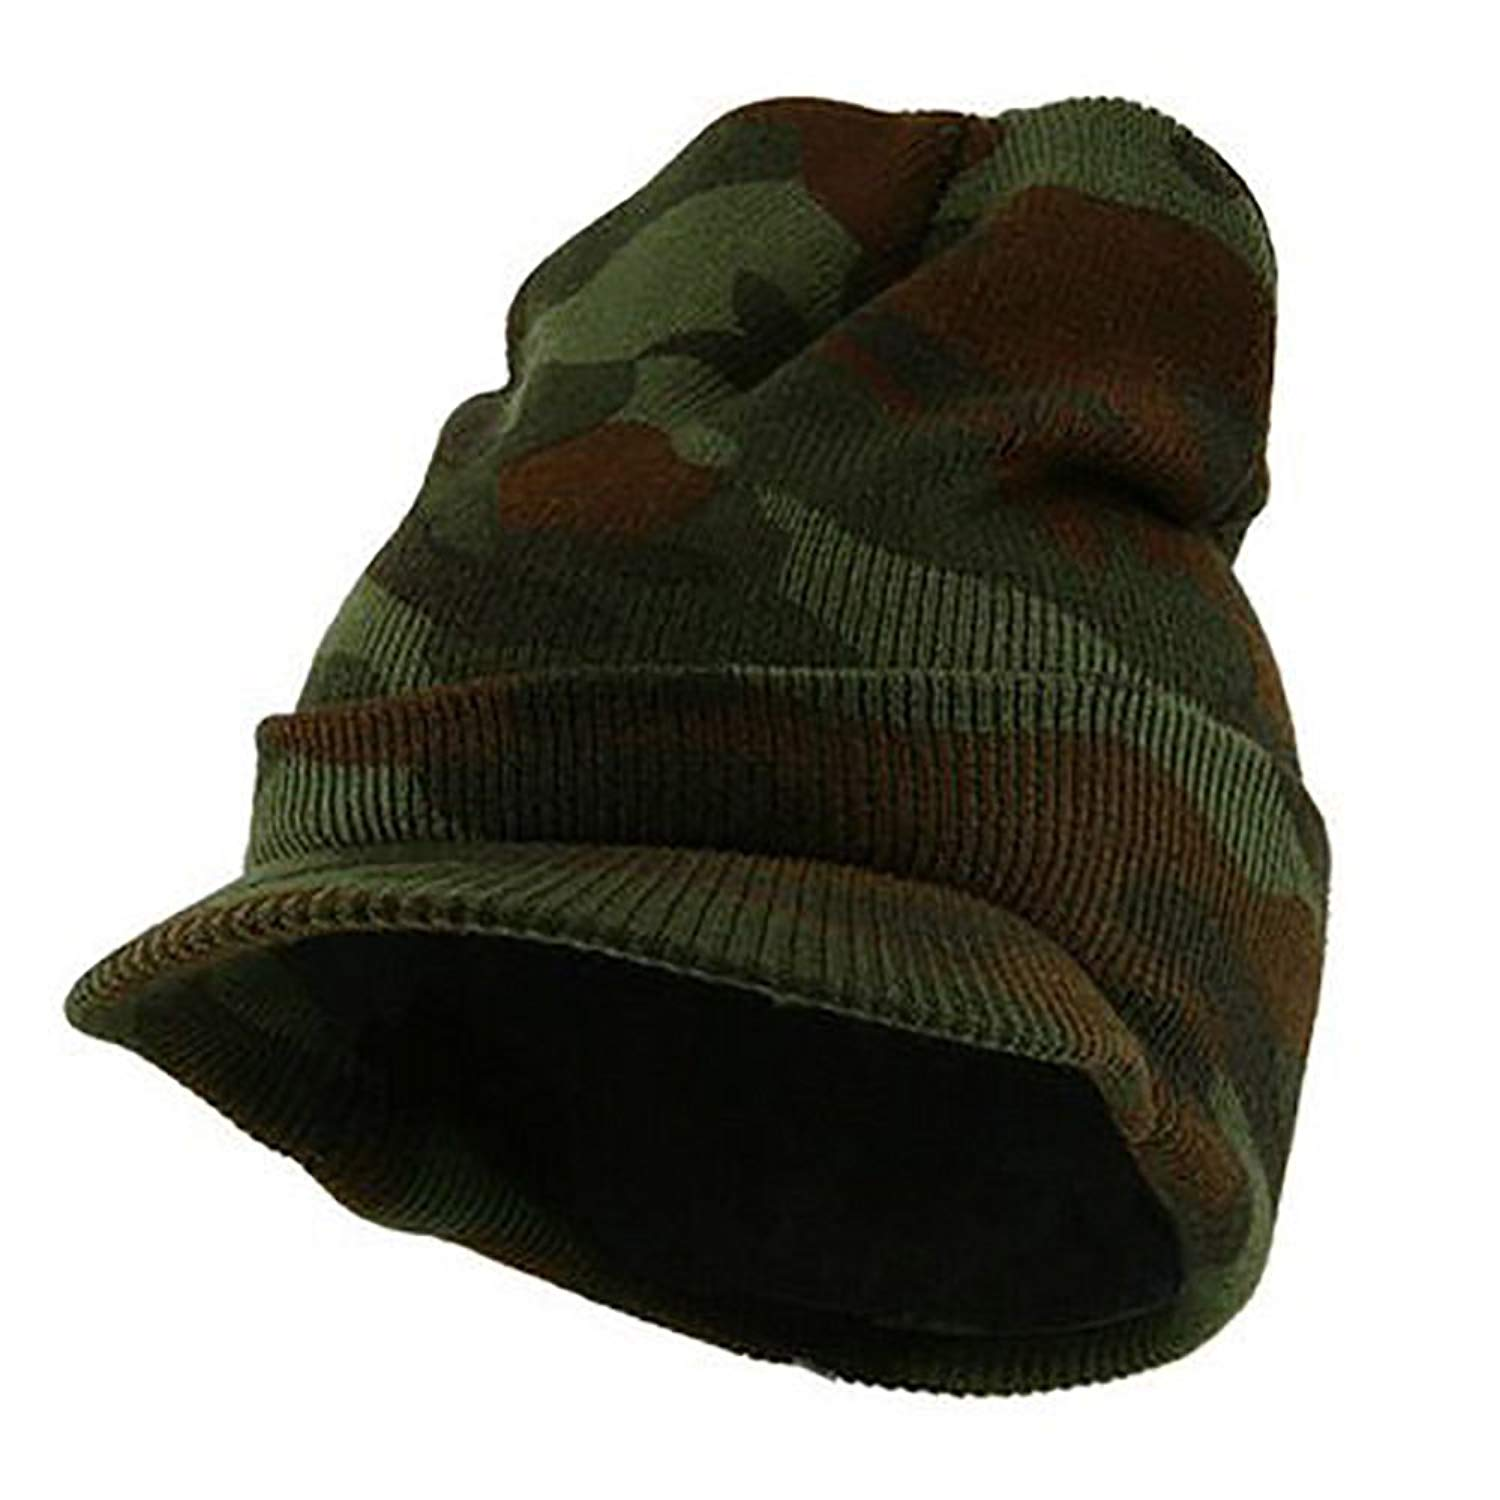 c8a69e0907c Get Quotations · Youth Camouflage Camo Plain Visor Beanie Knit Ski Hat Warm  Solid Color Cuff NEW Magic